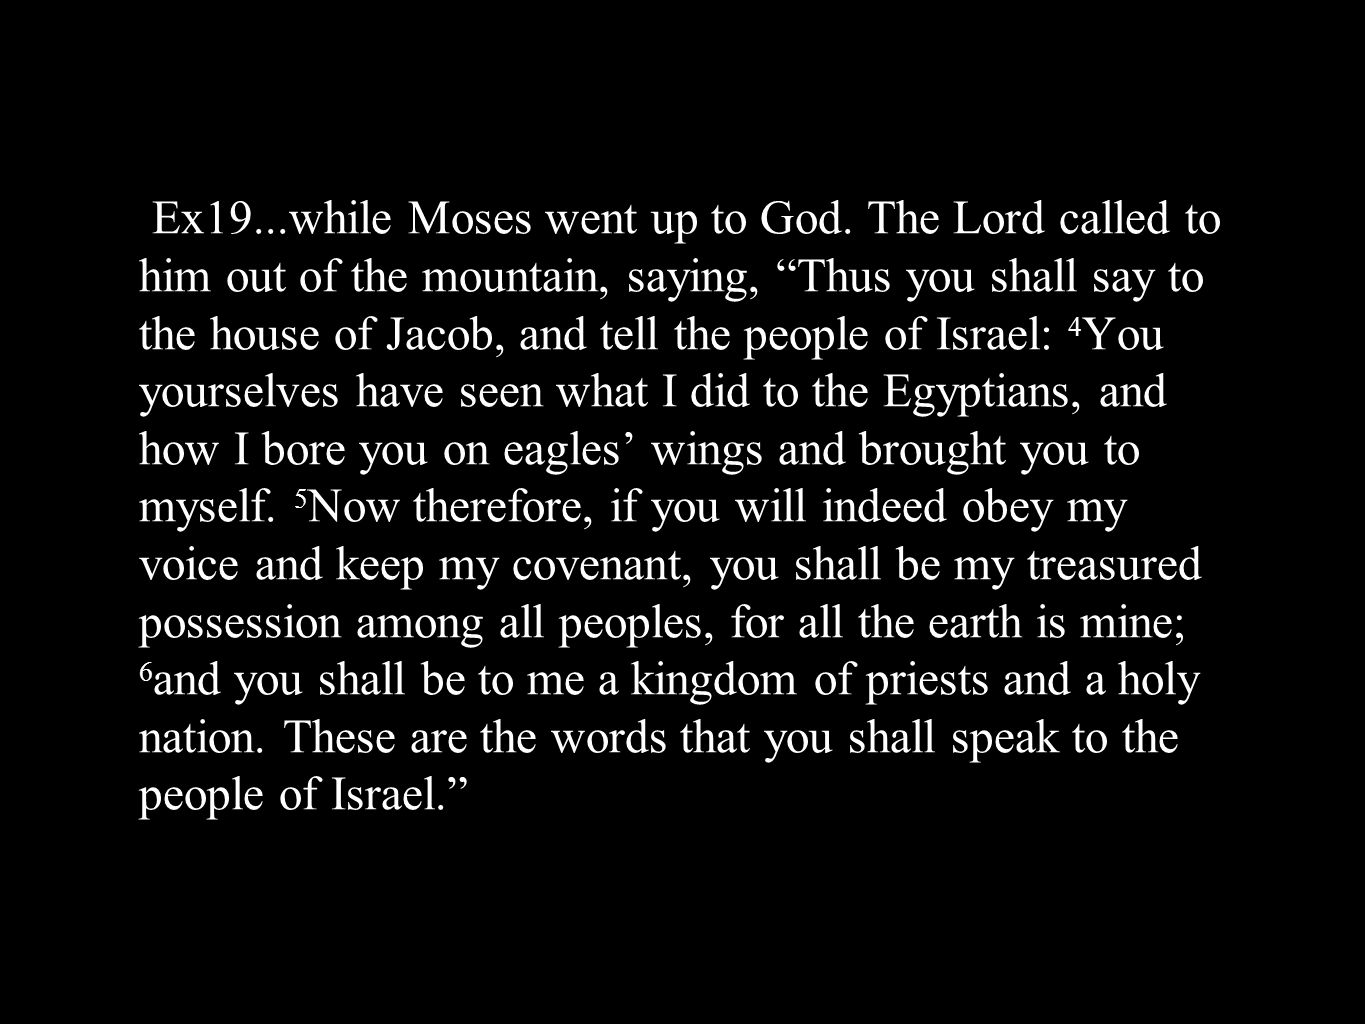 Ex19. while Moses went up to God